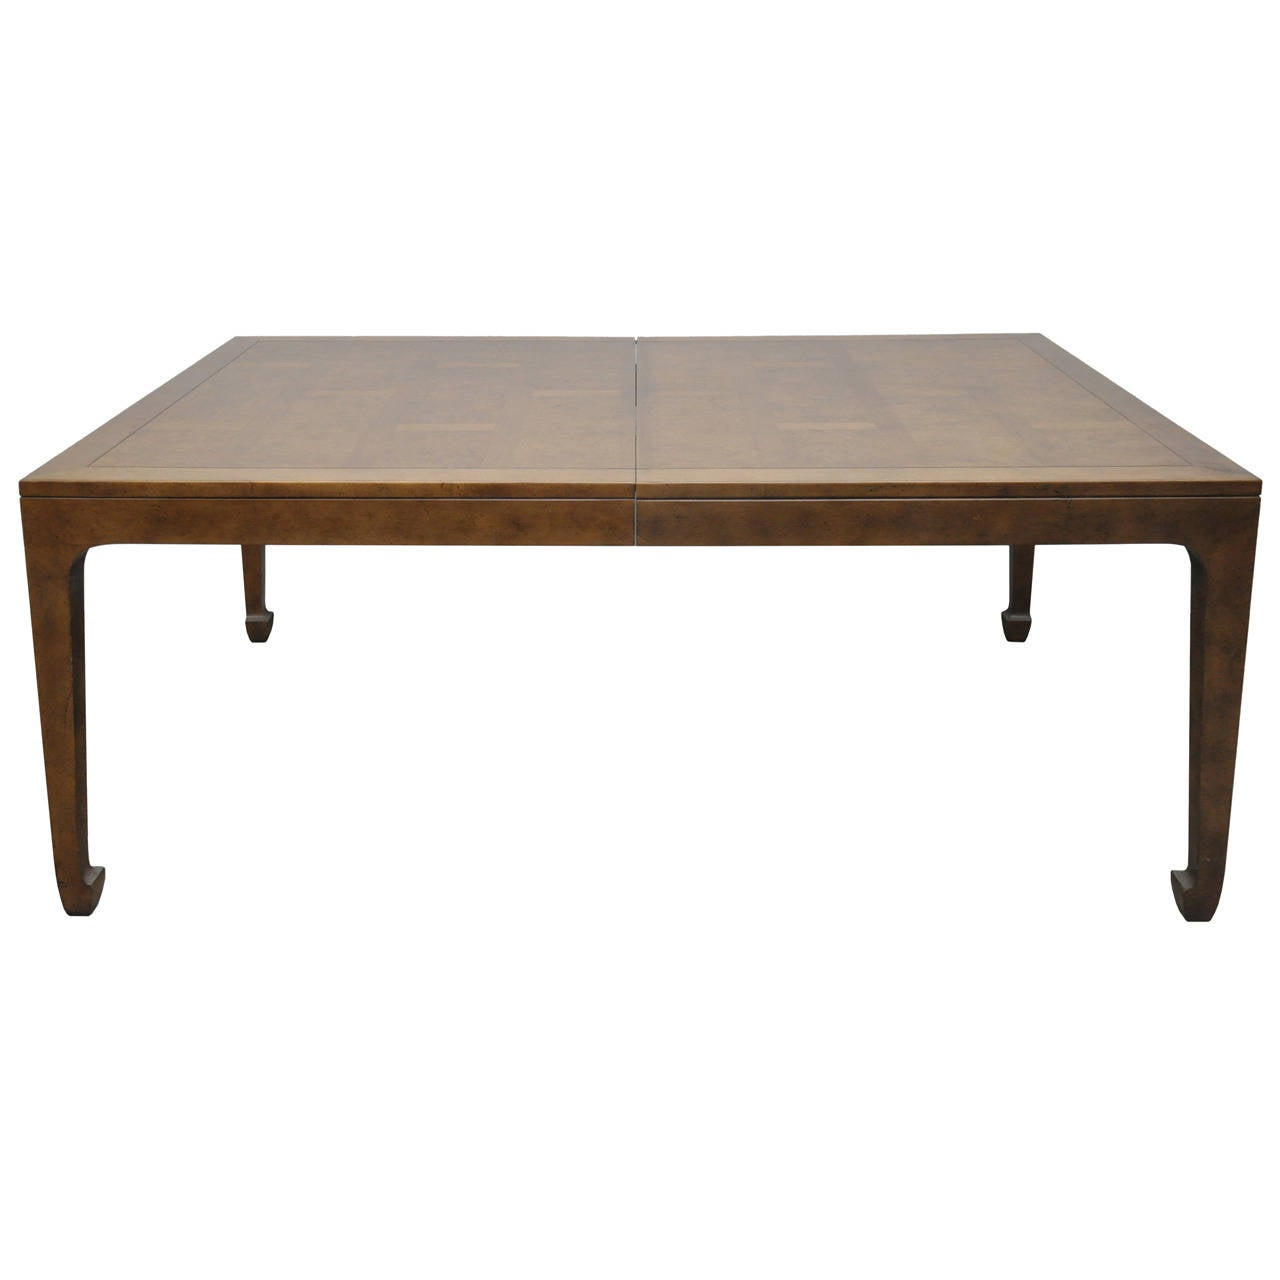 Japanese Style Kitchen Tables Baker Furniture Asian Style Mid Century Dining Table W 3